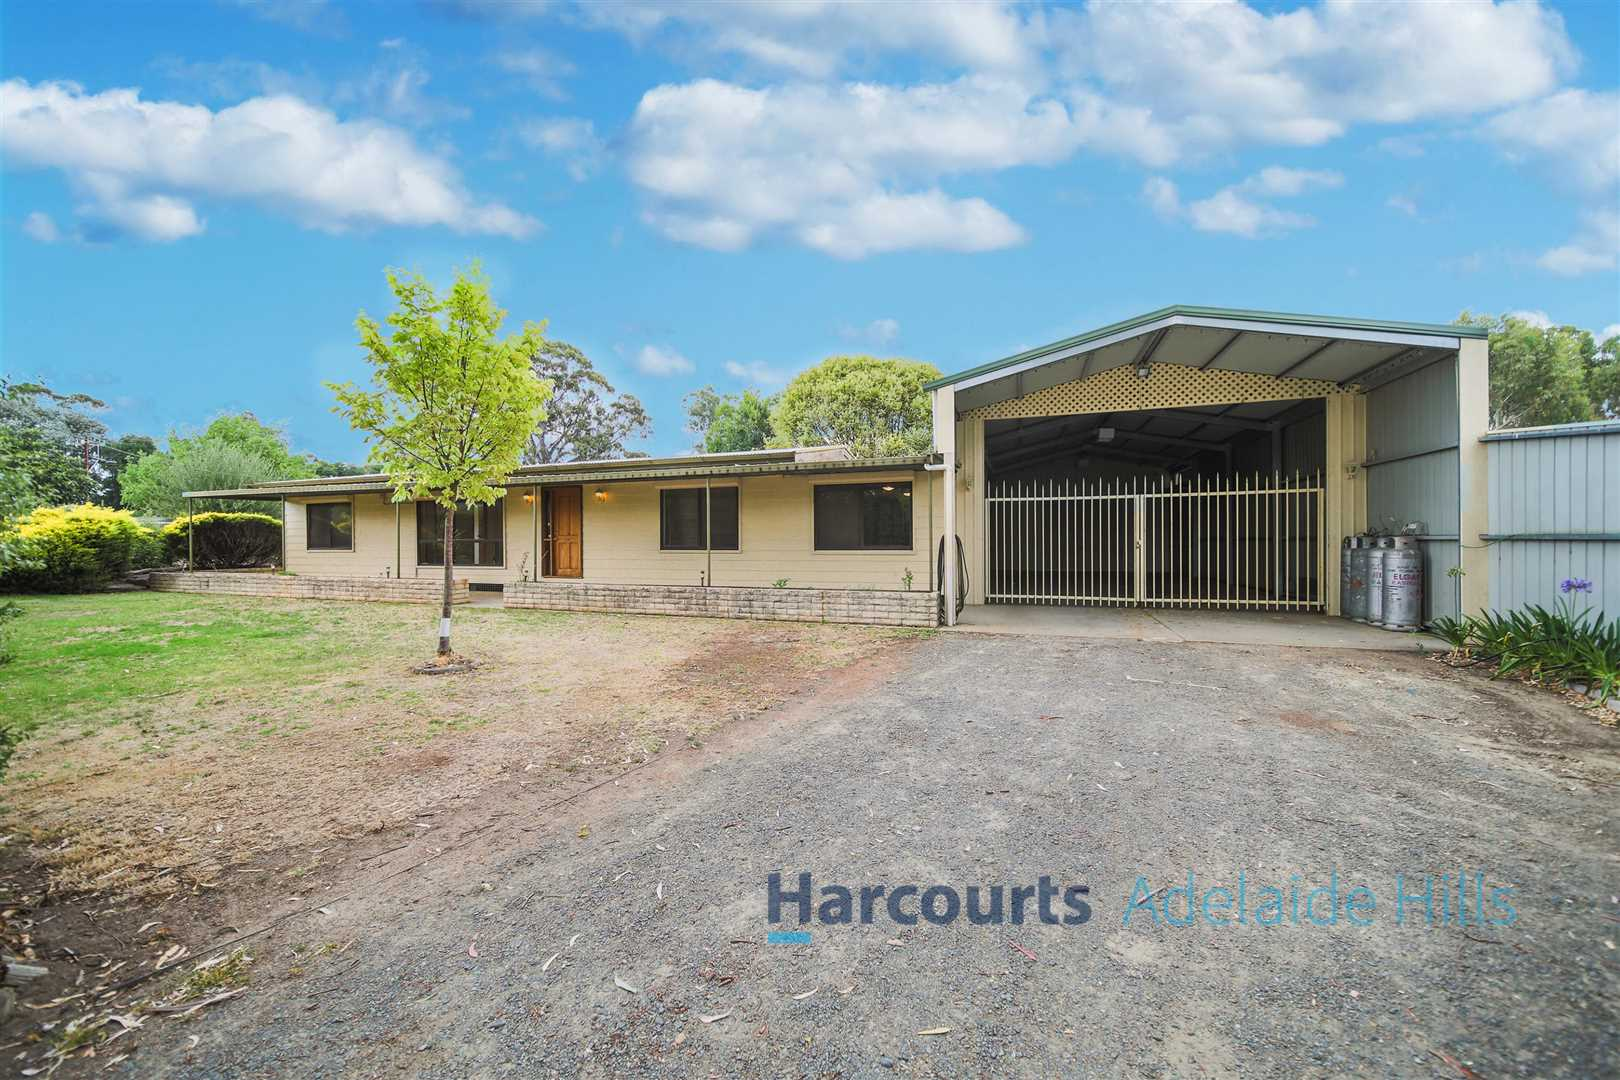 Huge Sheds, Solar & Privacy